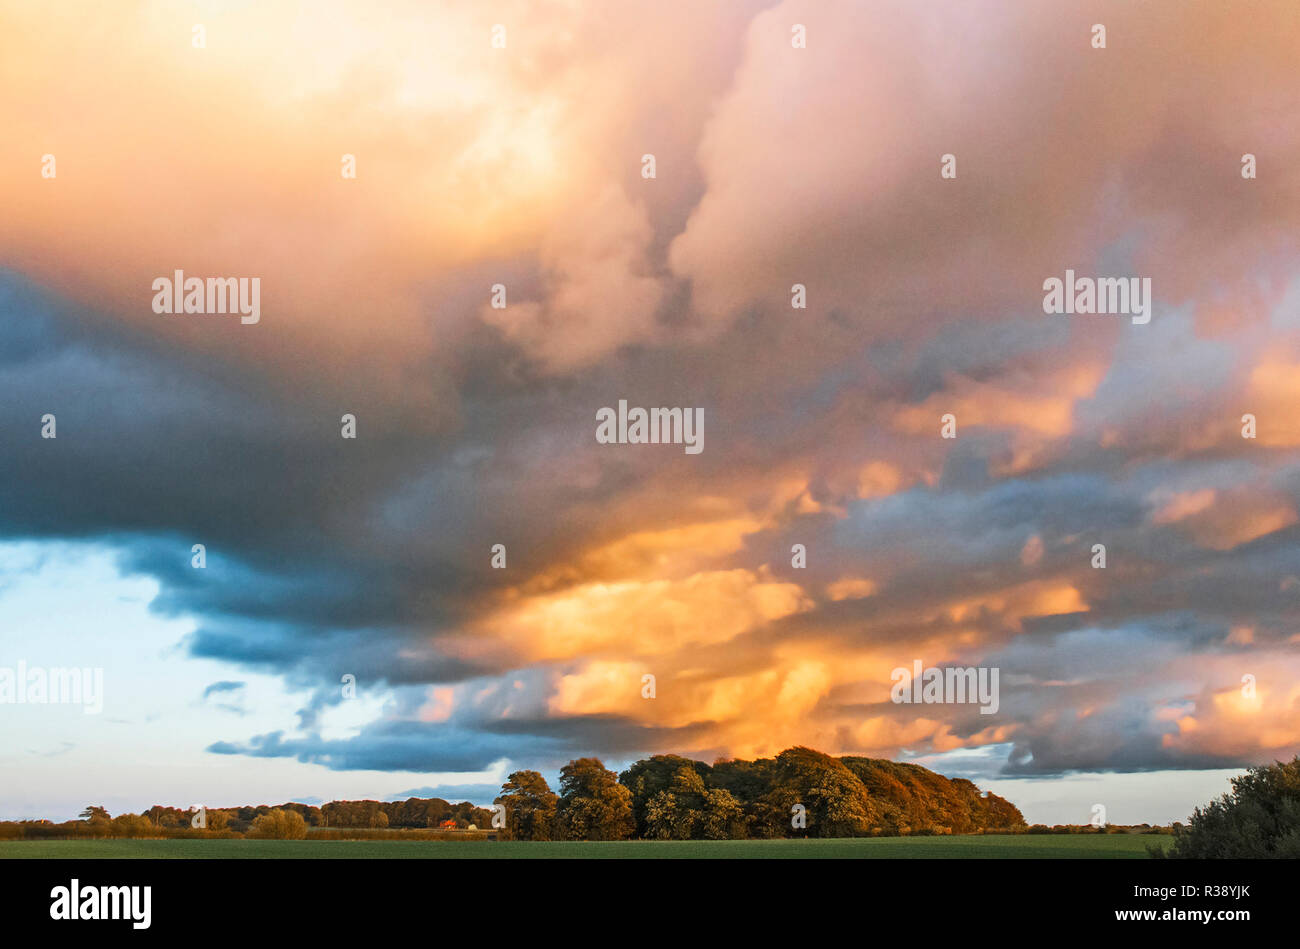 Evening sunlight reflecting off storm clouds opver open farmland - Stock Image